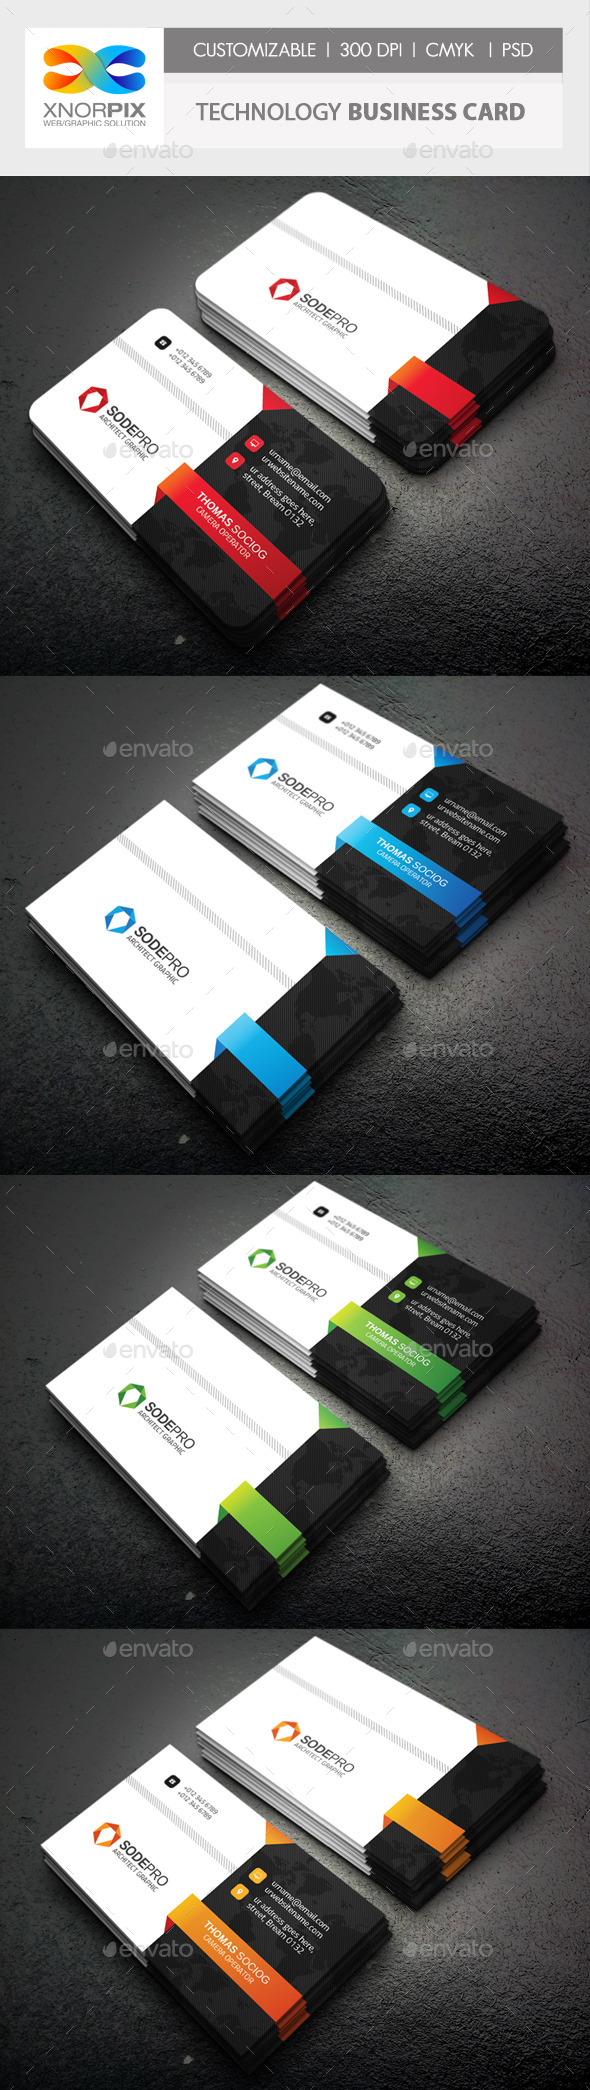 GraphicRiver Technology Business Card 10494793